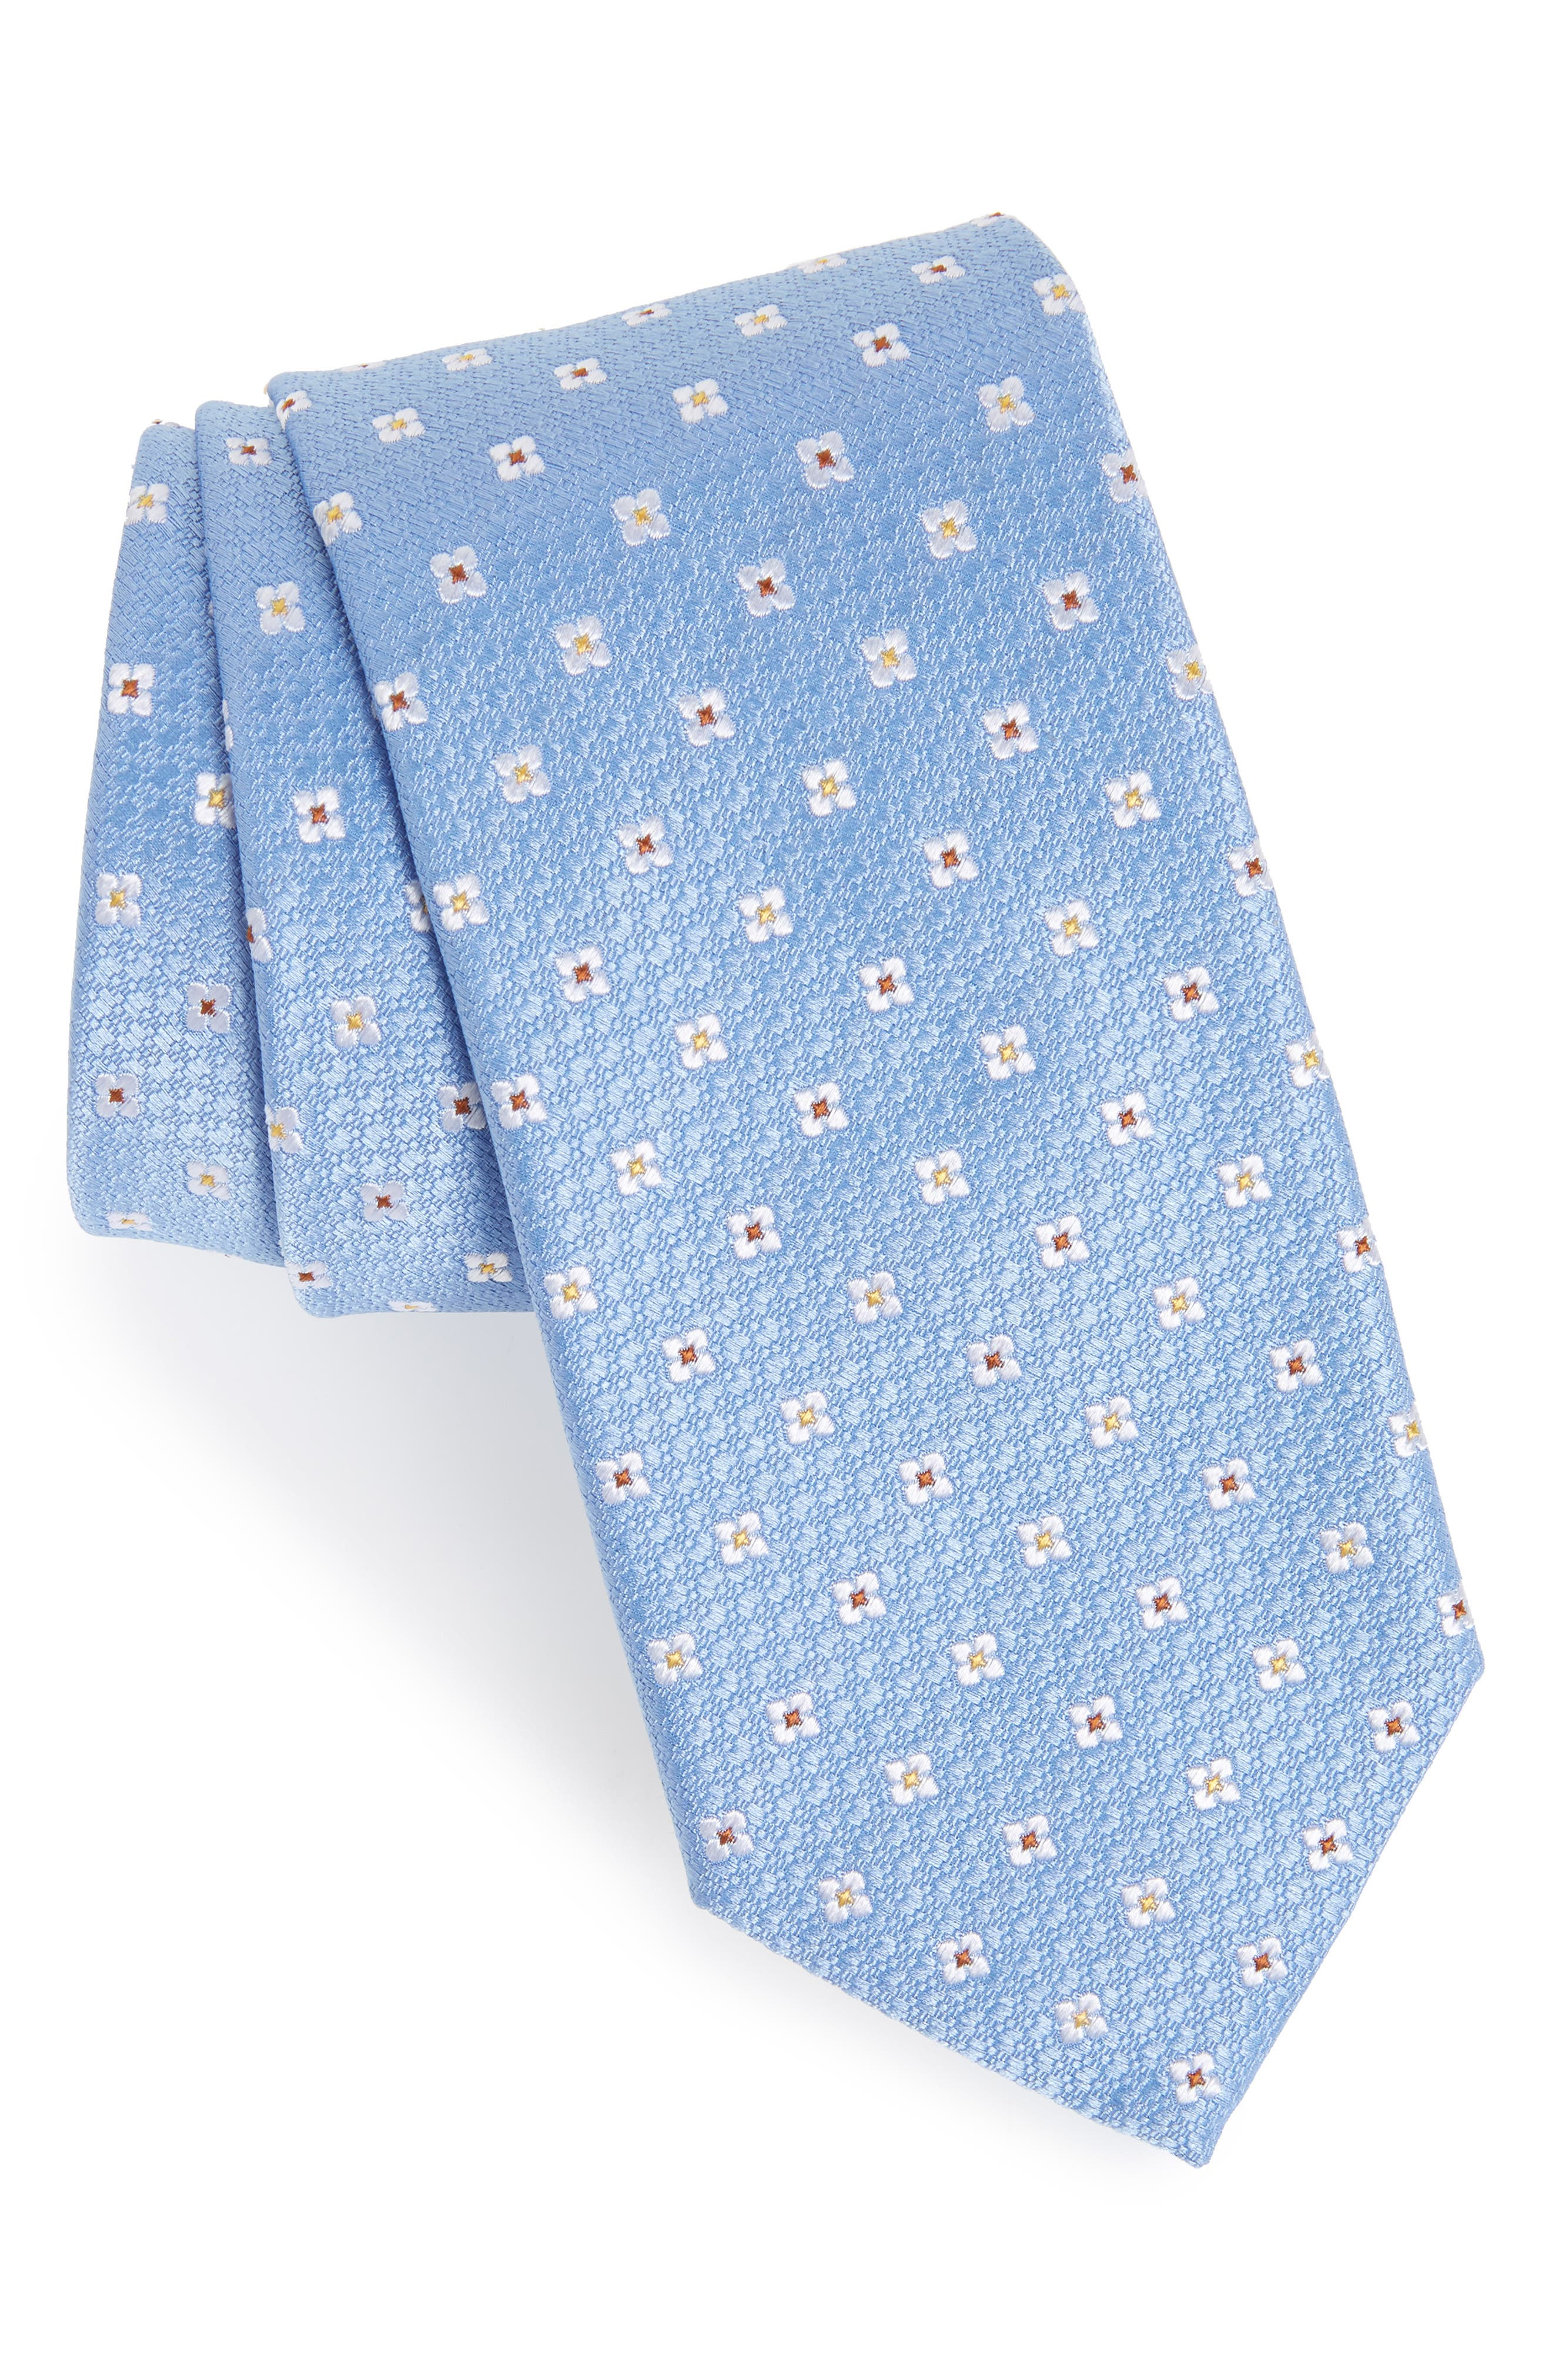 Neat Floral Silk Tie,                             Main thumbnail 1, color,                             410